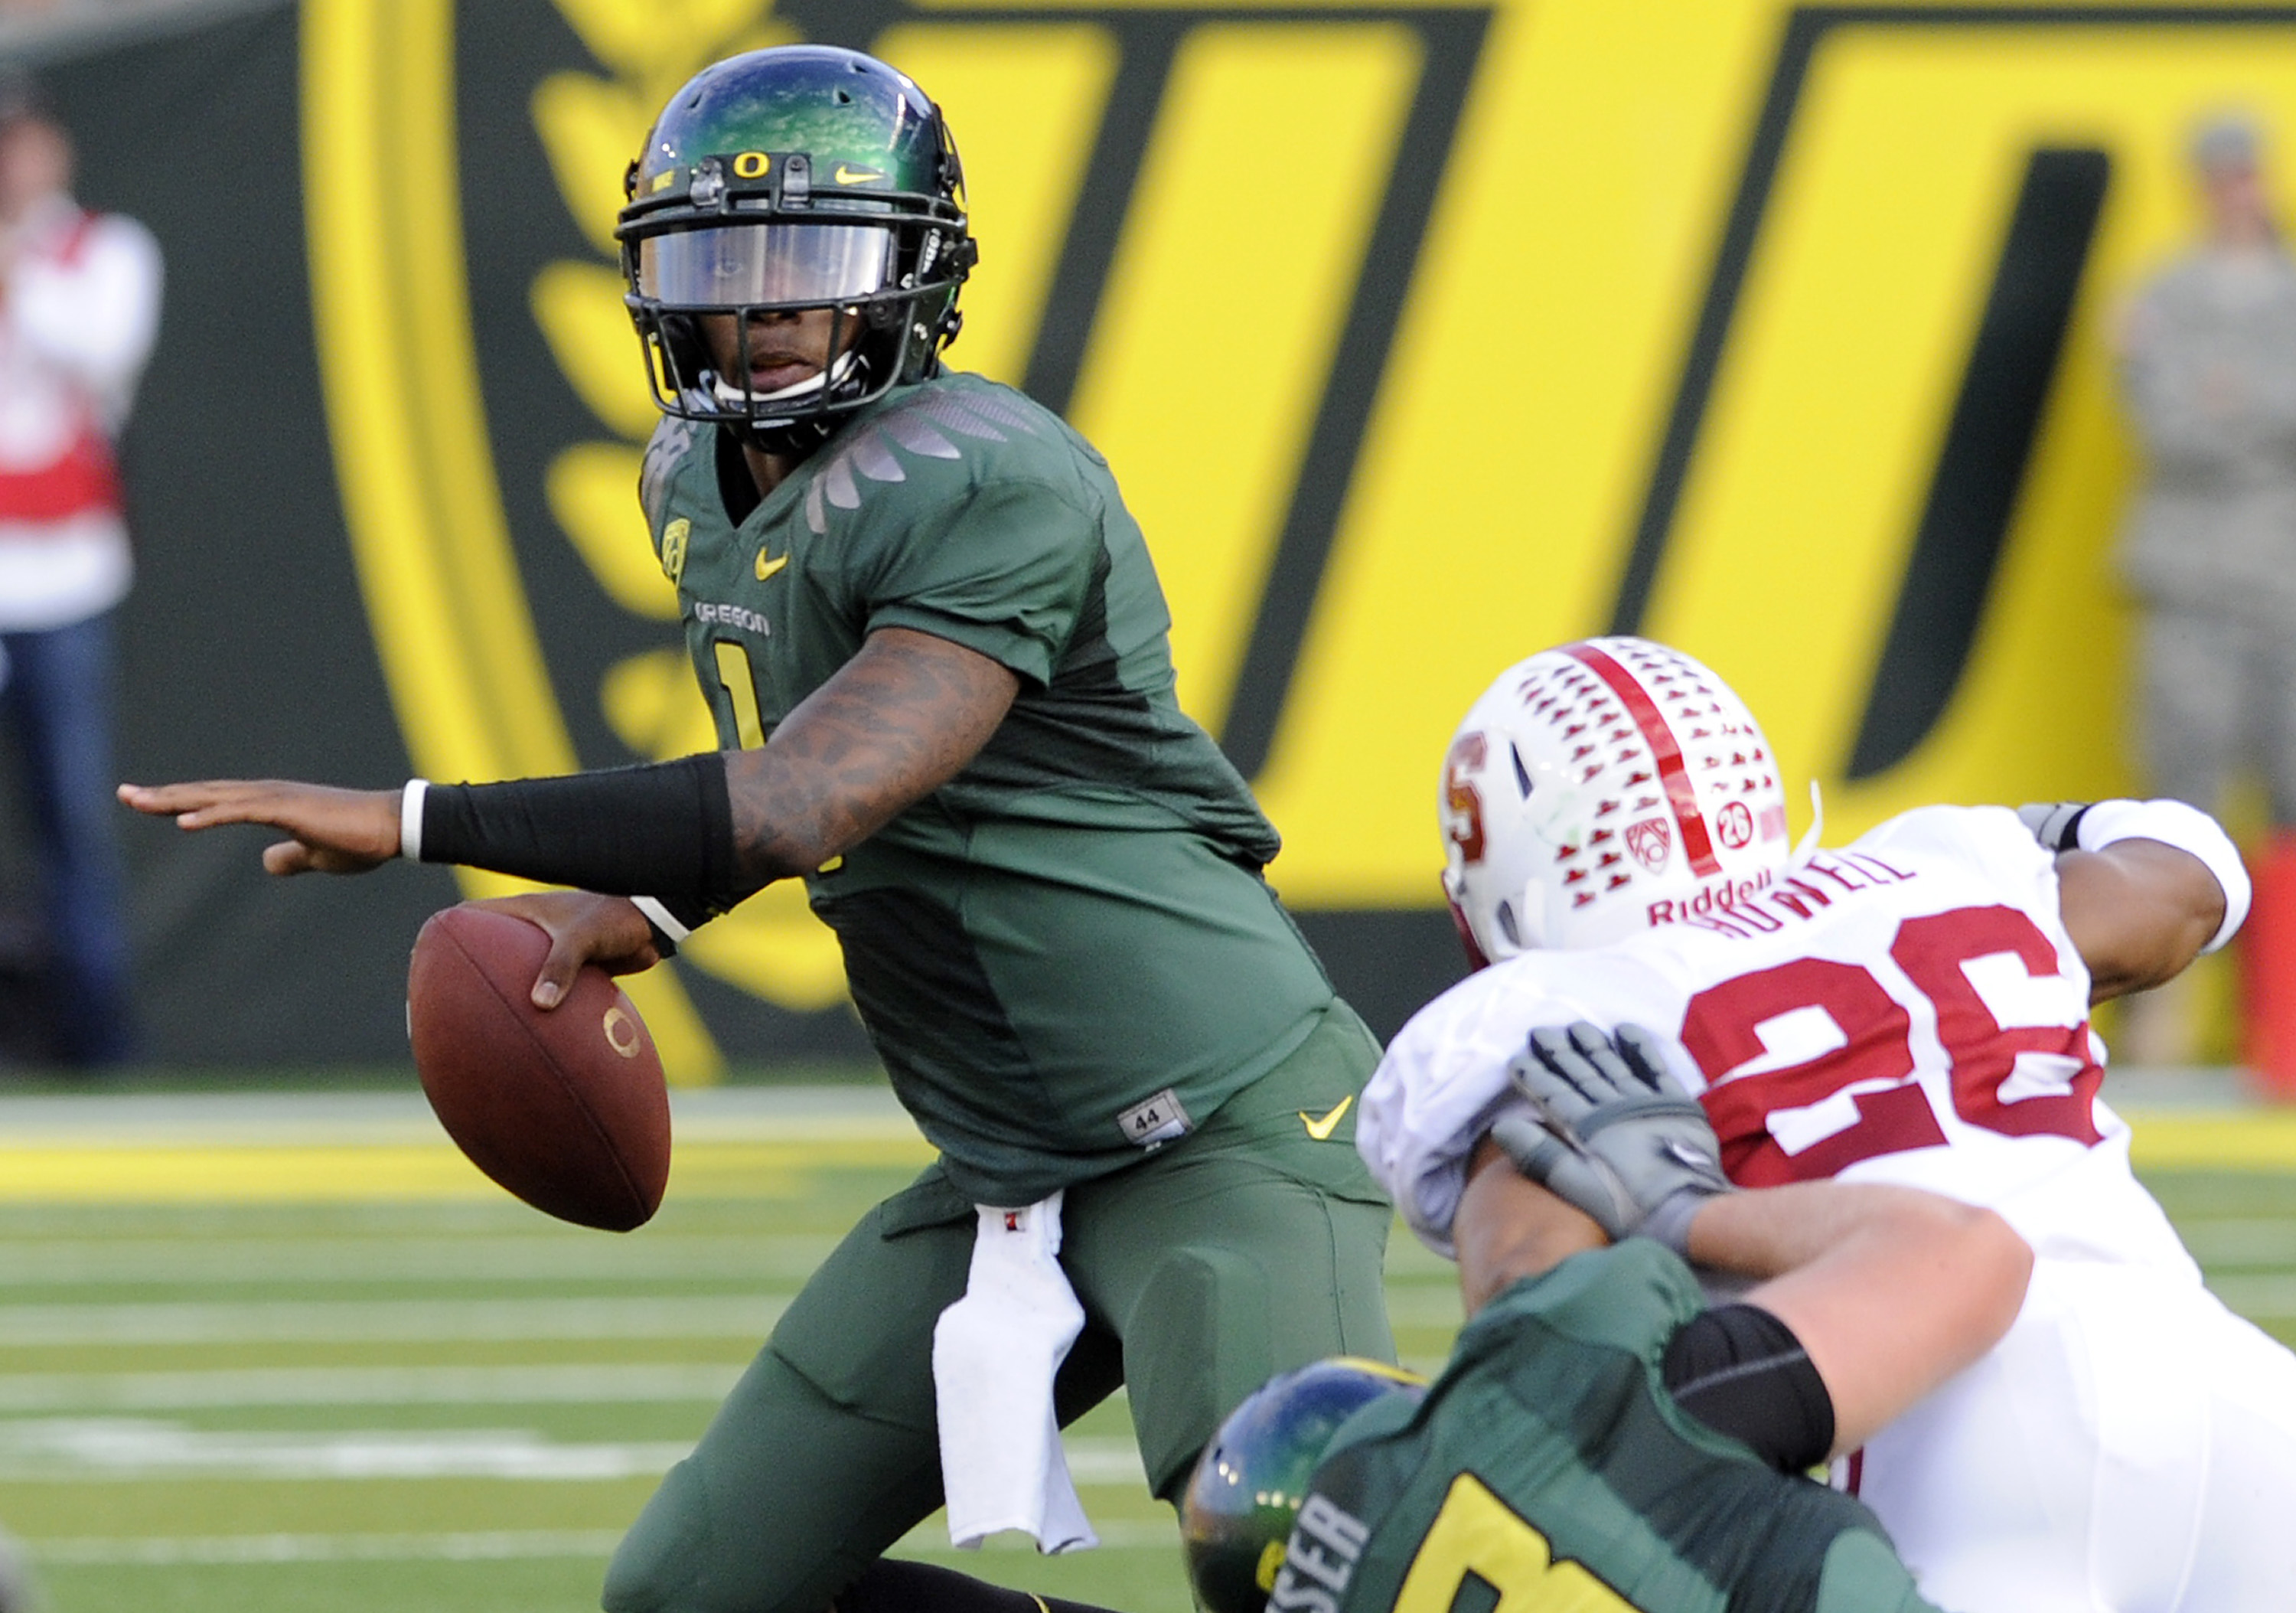 EUGENE, OR - OCTOBER 2: Quarterback Darron Thomas #1 of the Oregon Ducks looks to pass the ball as safety Delano Howard #26 of Stanford applies pressure in the first quarter of the game at Autzen Stadium on October 2, 2010 in Eugene, Oregon. (Photo by Ste